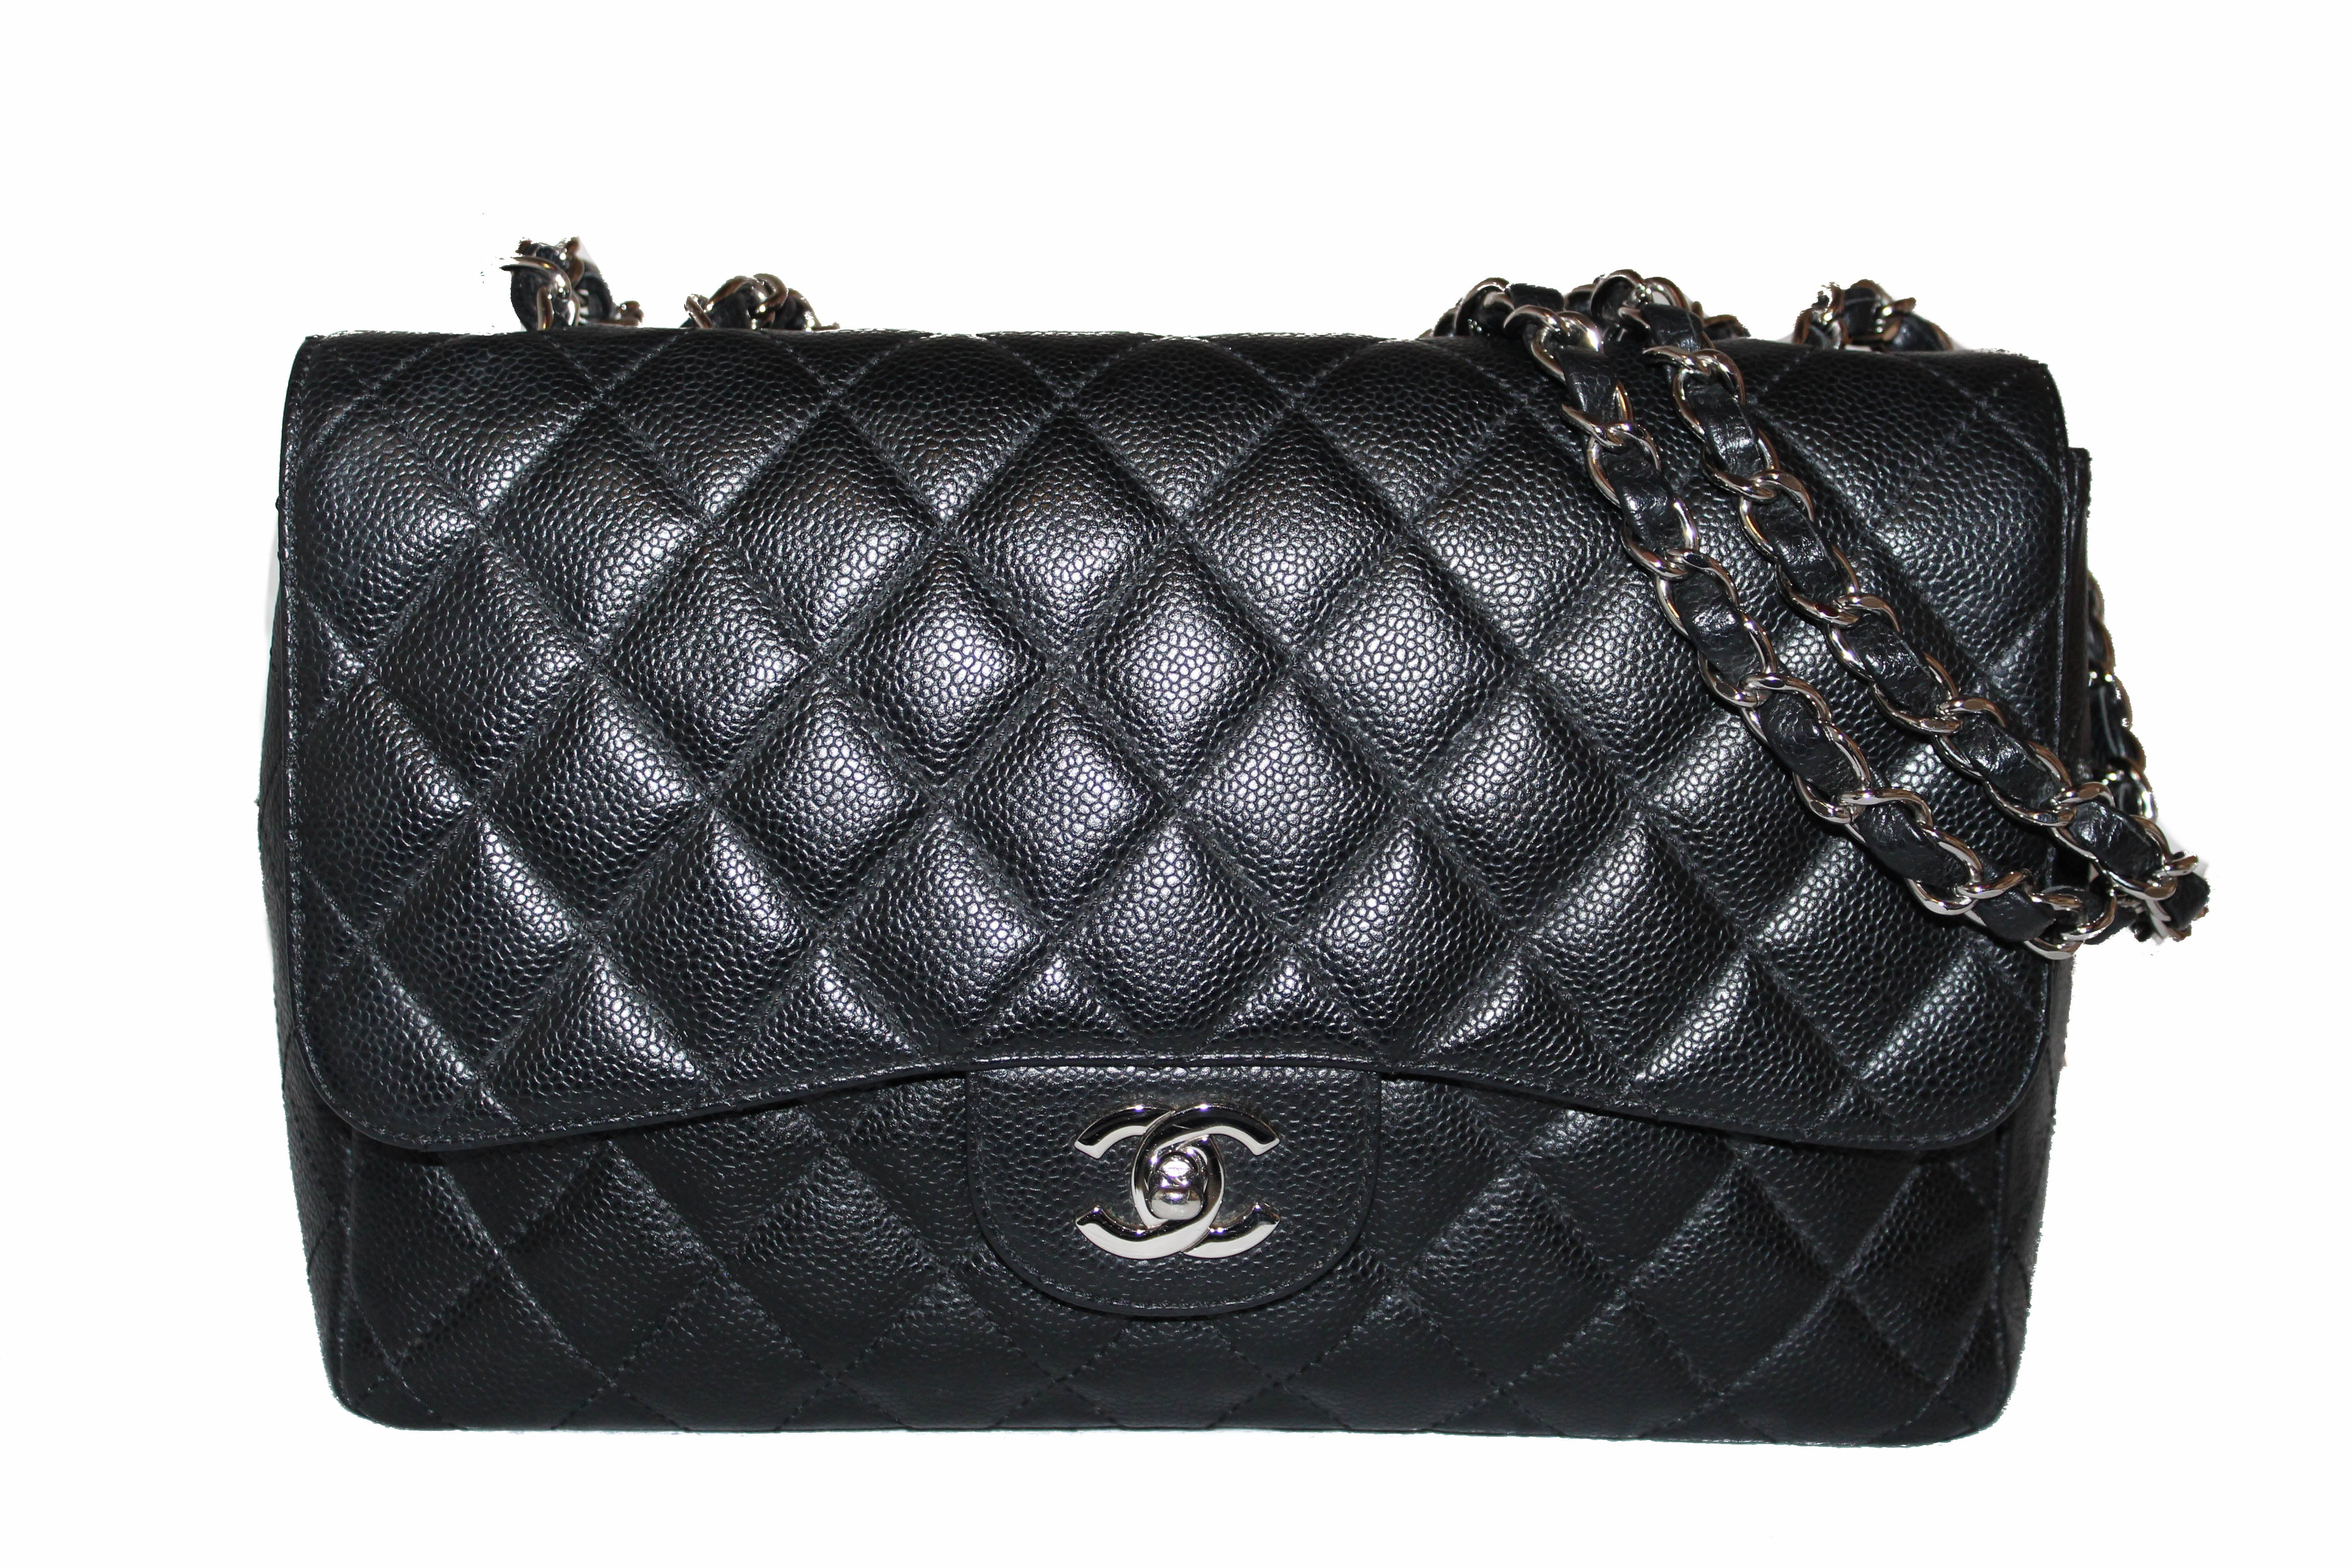 Authentic Chanel Black Quilted Caviar Leather Jumbo Single Flap Bag